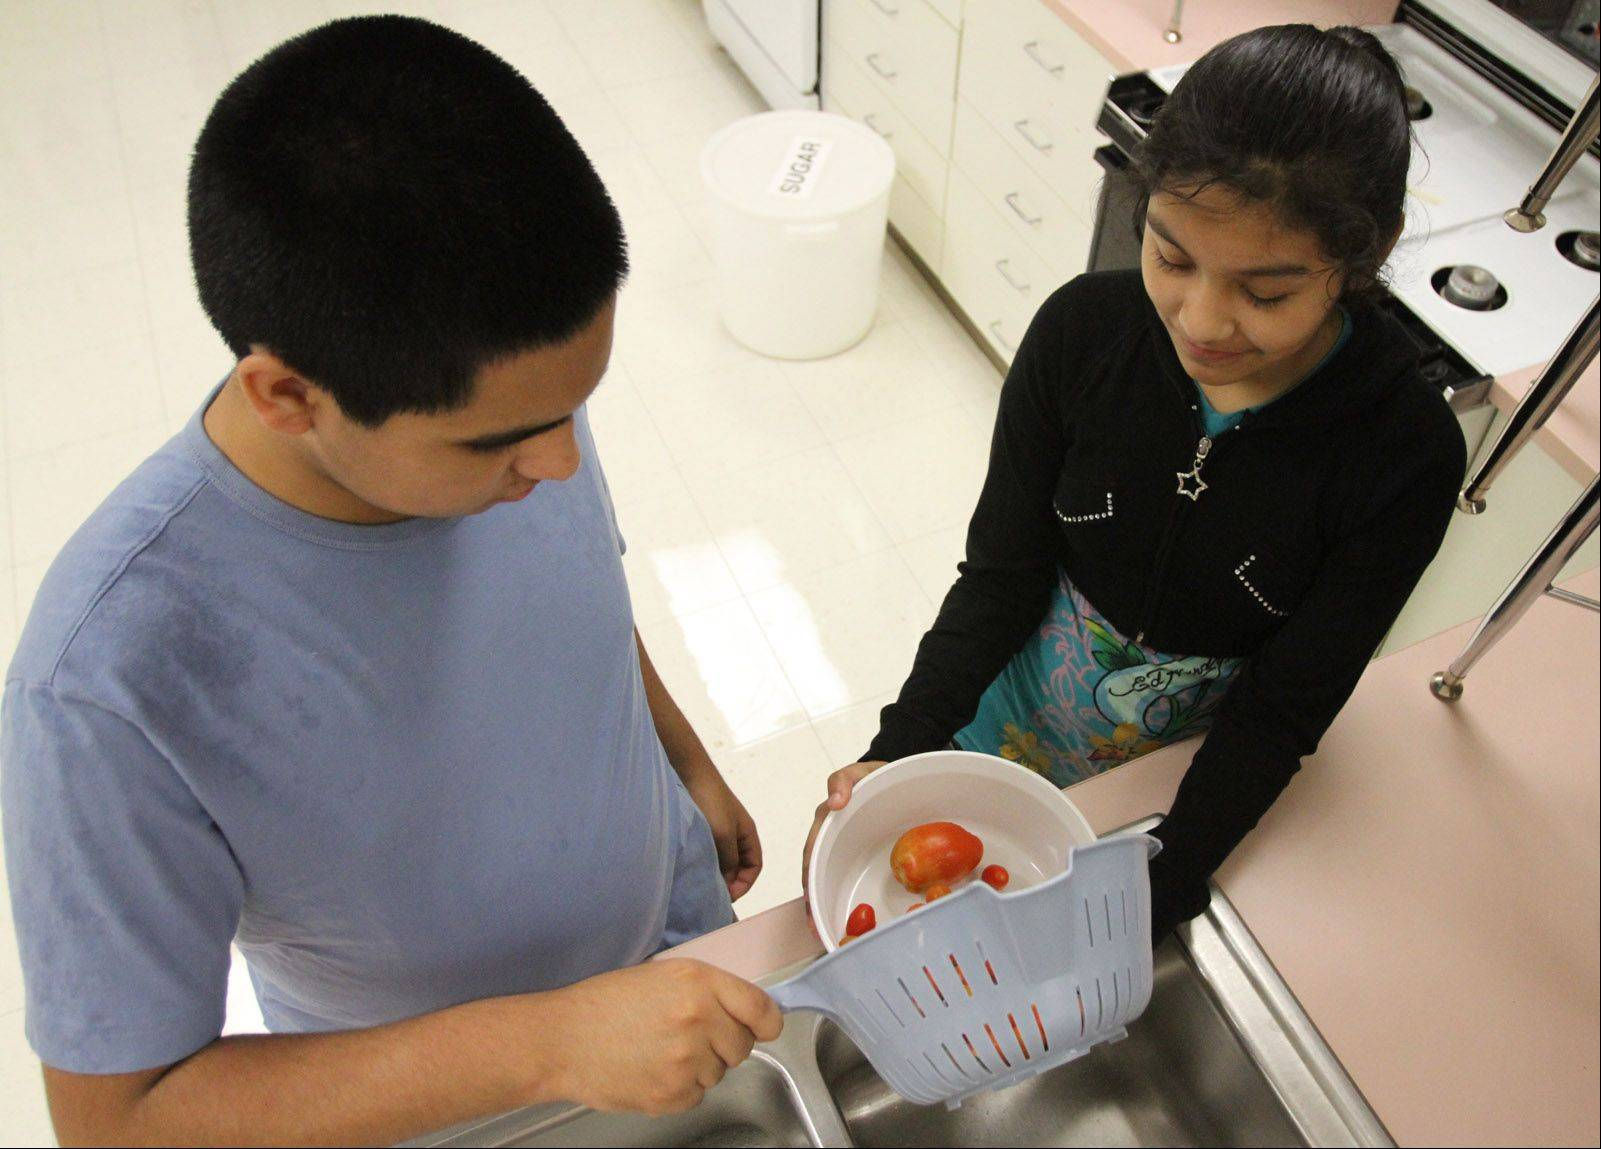 Students Luis Rodriguez and Alondra Ramos, both eighth-graders at London Middle School, wash tomatoes recently picked out of the school garden.